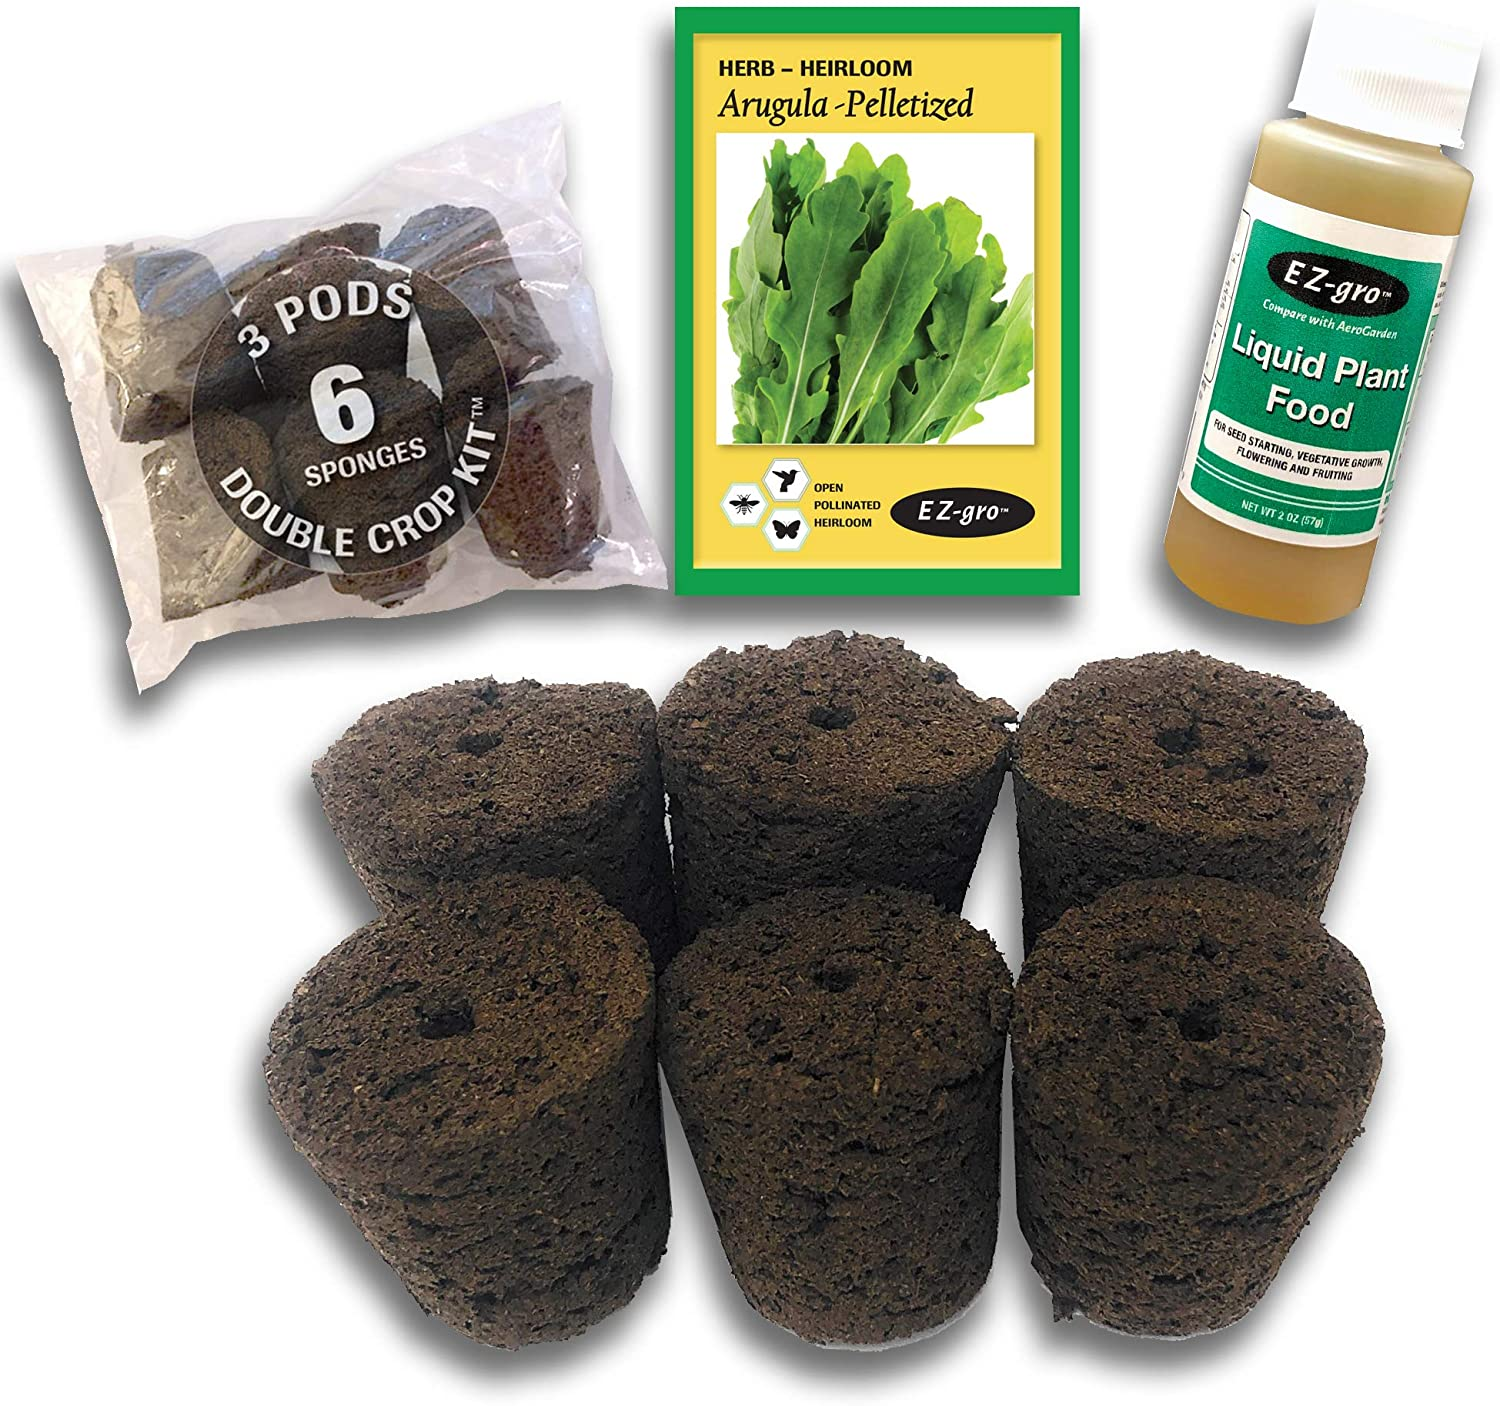 Arugula Seed Pod Kit Compatible with Click and Grow Smart Garden by EZ-GRO (6 Pack) | Double The Sponges & Double The Seed for 2 Crops | Pelletized Seed Compatible with Click and Grow Pods